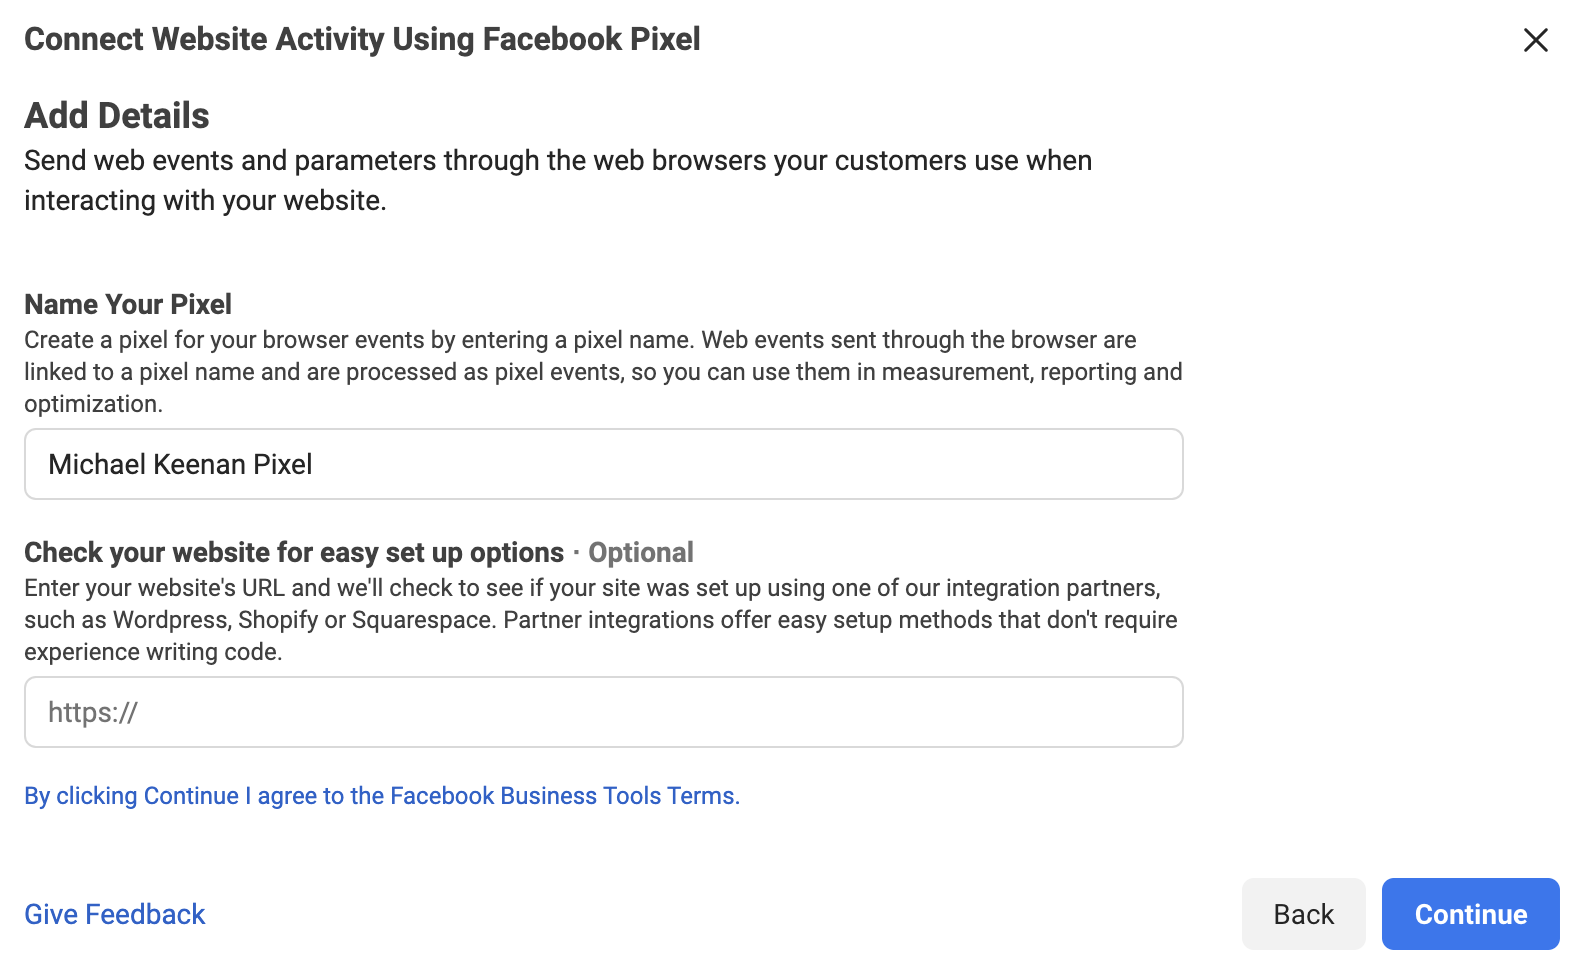 Connecting Website Activity Using Facebook Pixel